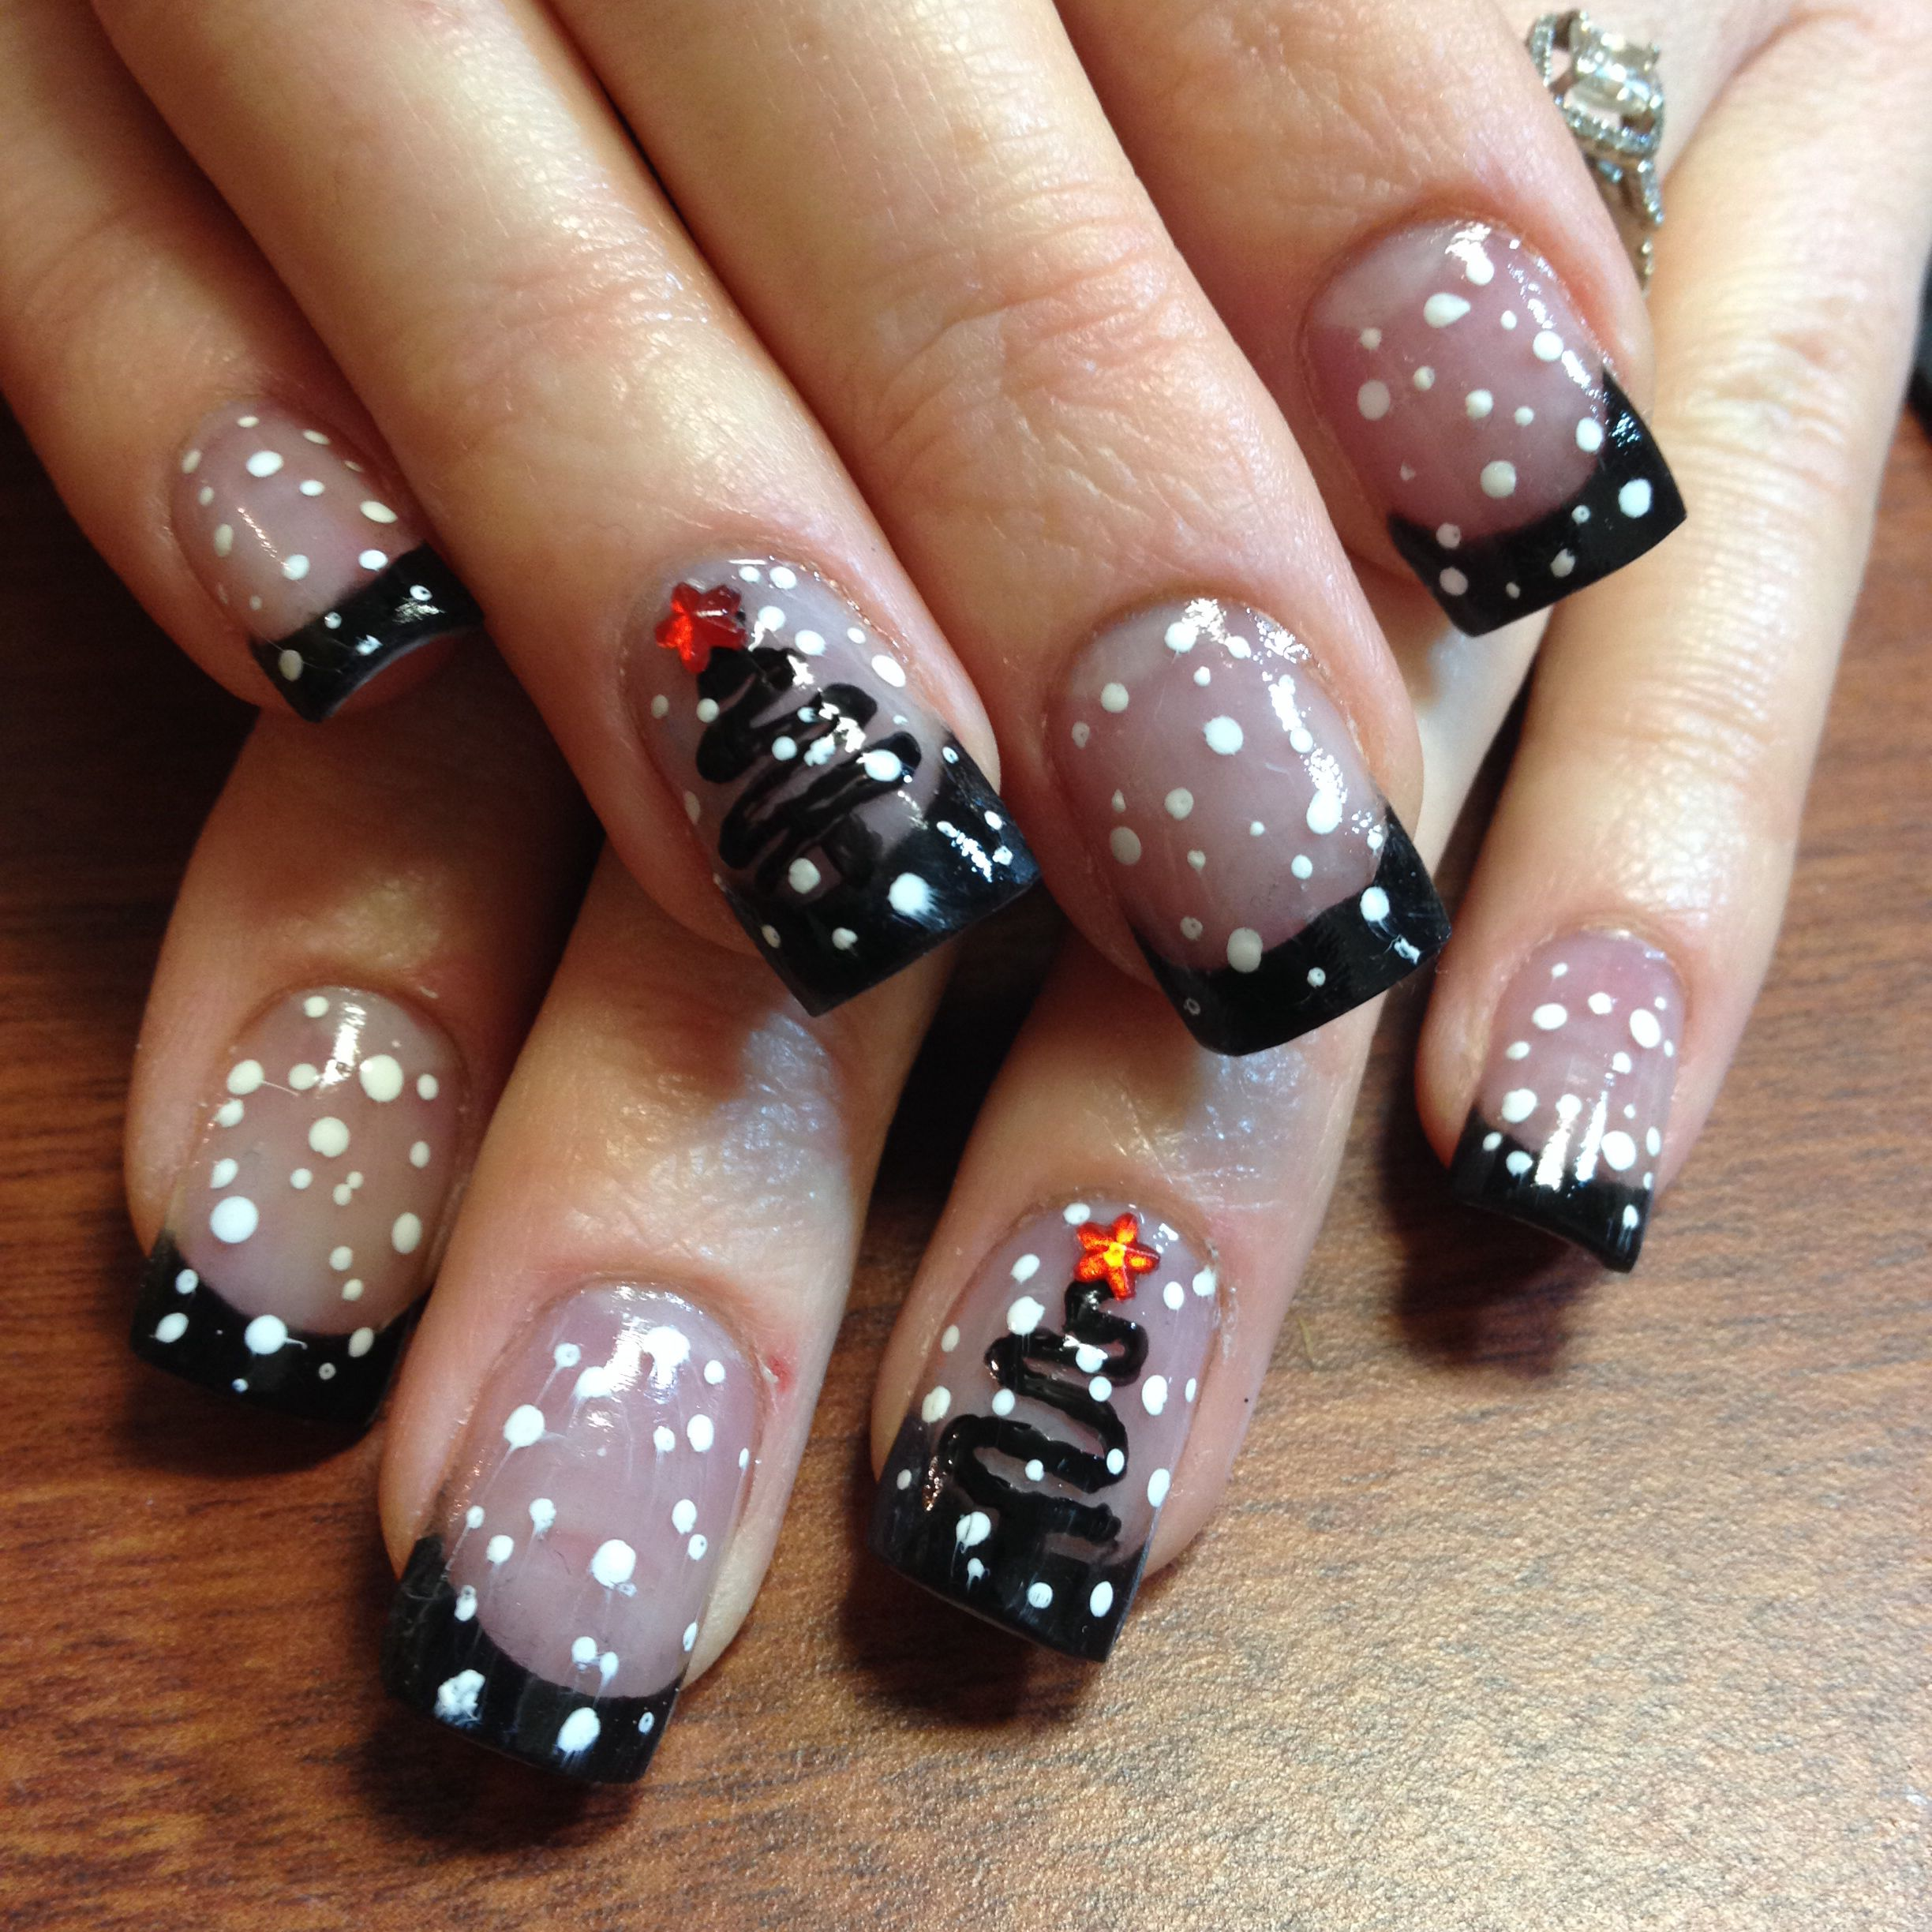 Pink and black acrylic nails with Christmas nail art | nails | Pinterest